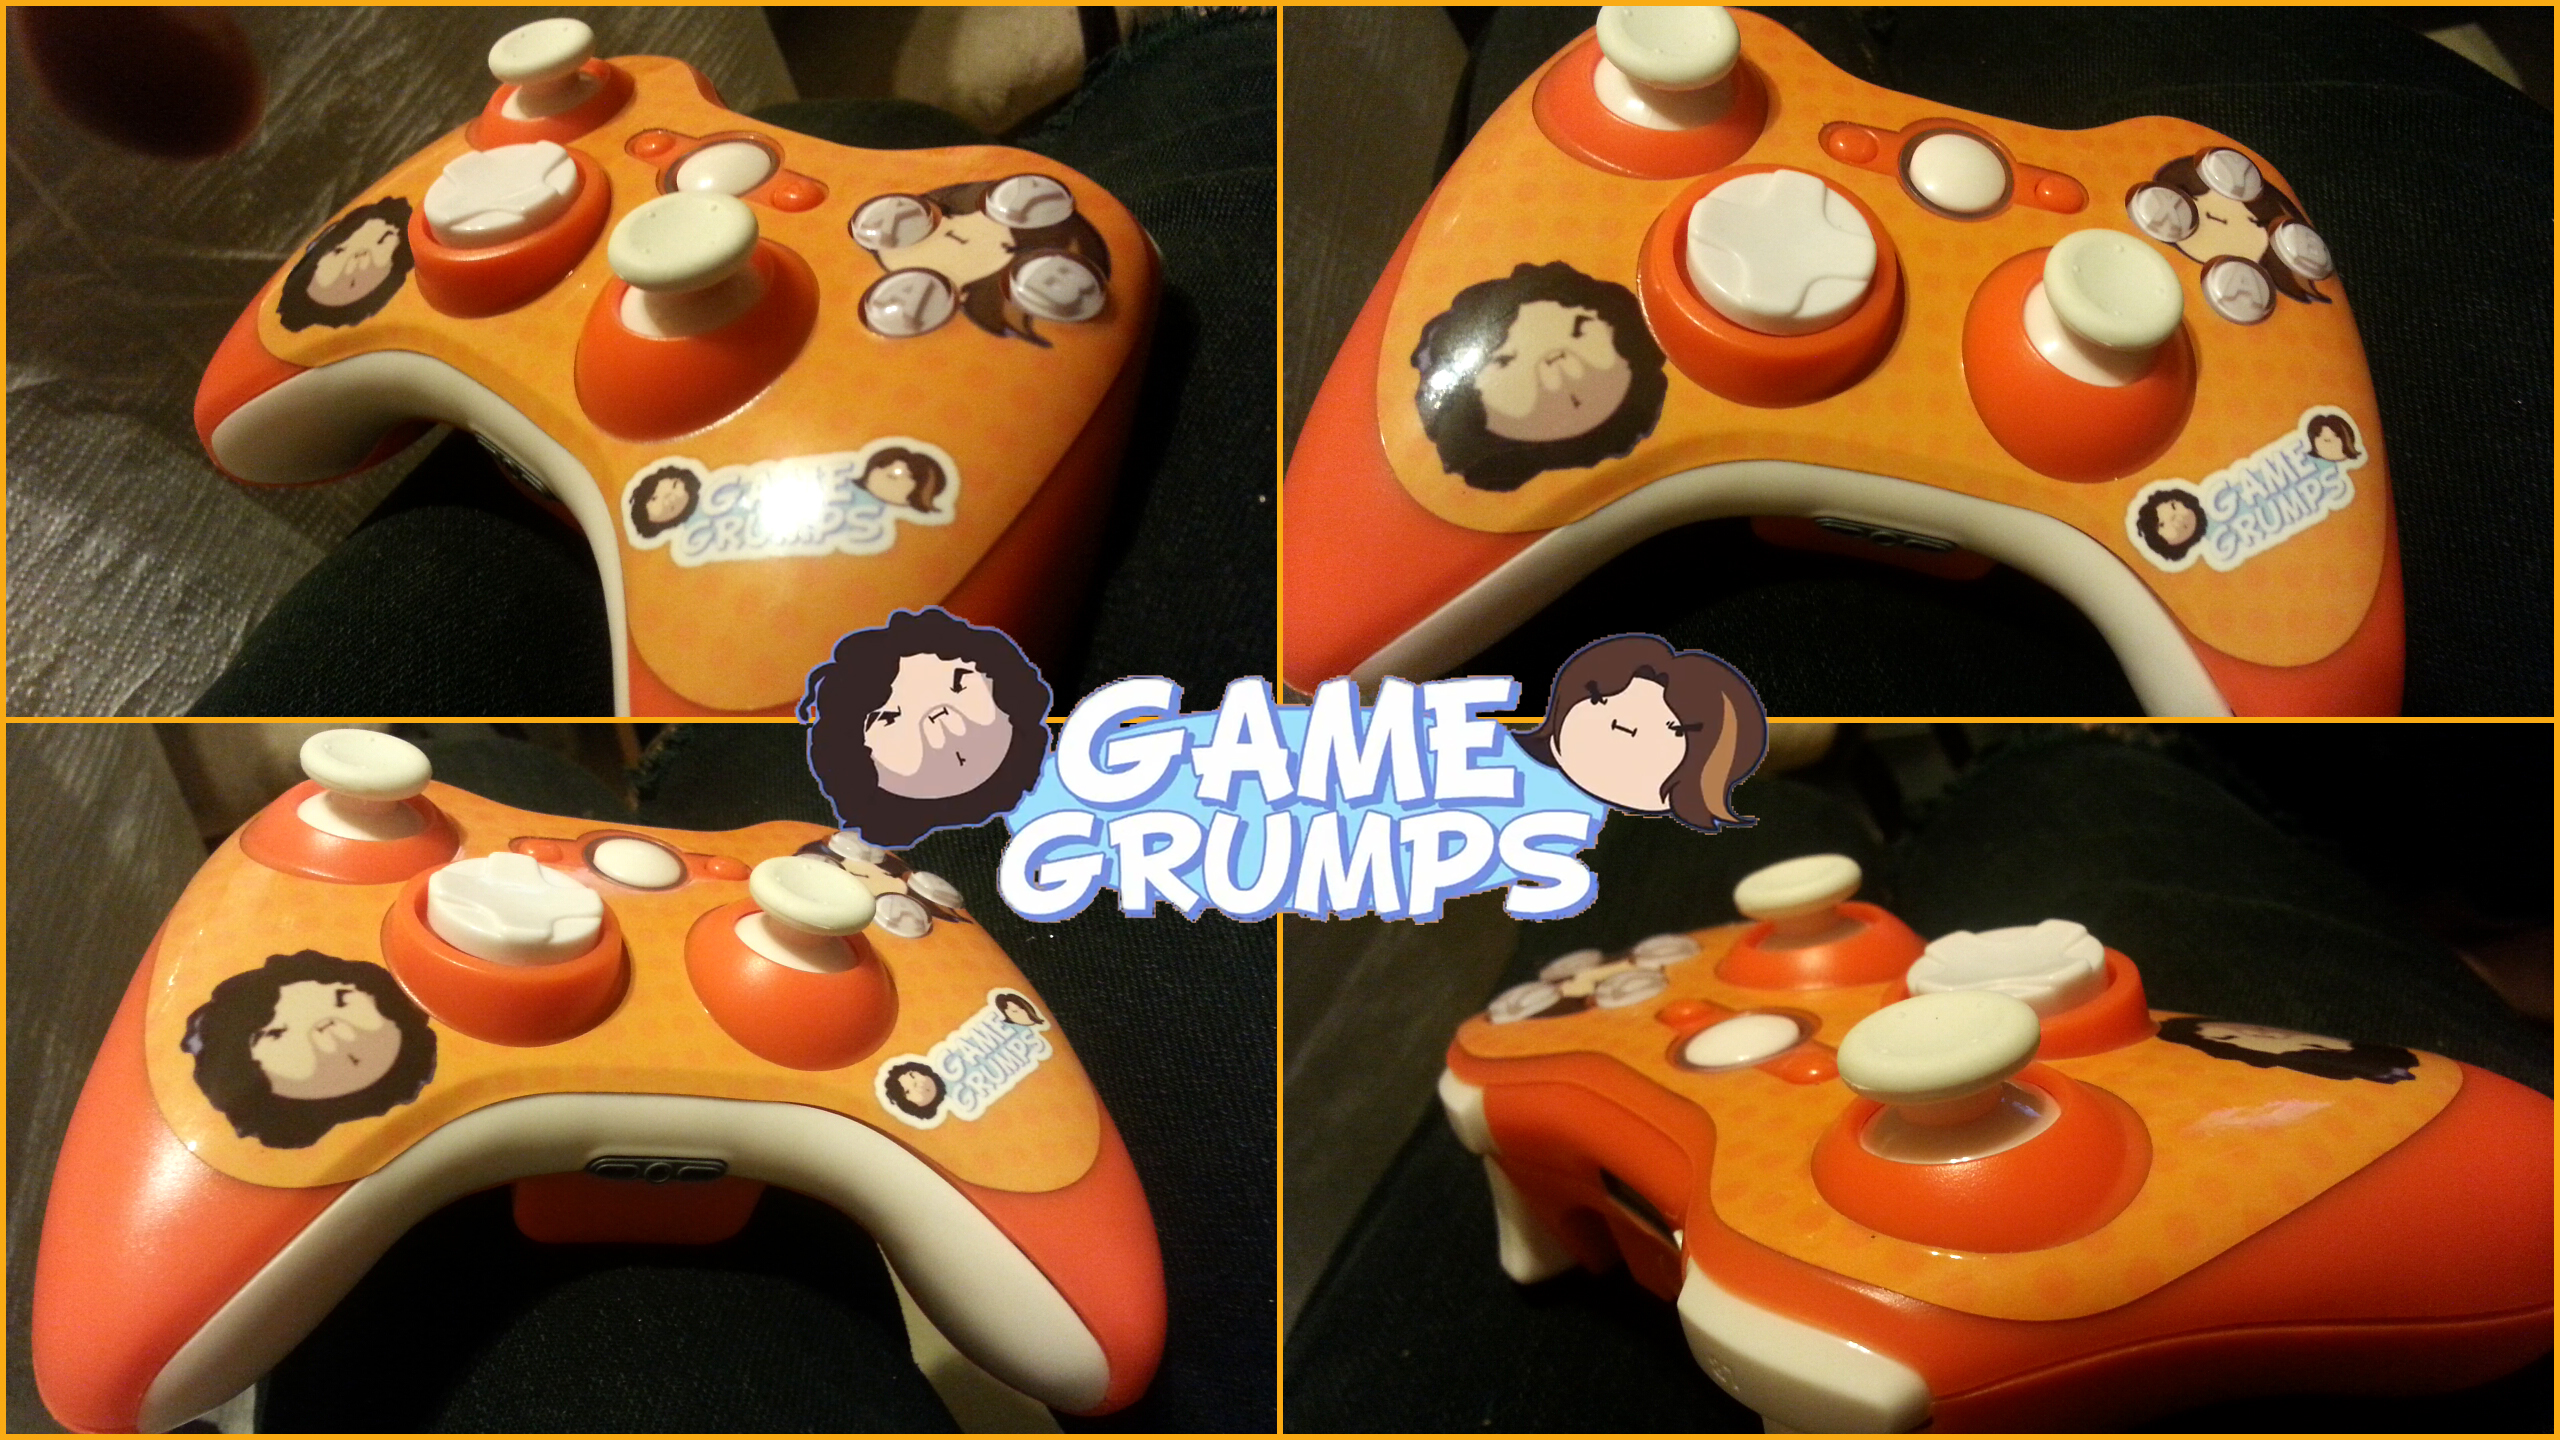 Game Grumps Wallpapers Wallpaper Cave Source · Game Grumps Iphone 5 Wallpaper Wallpaper Directory